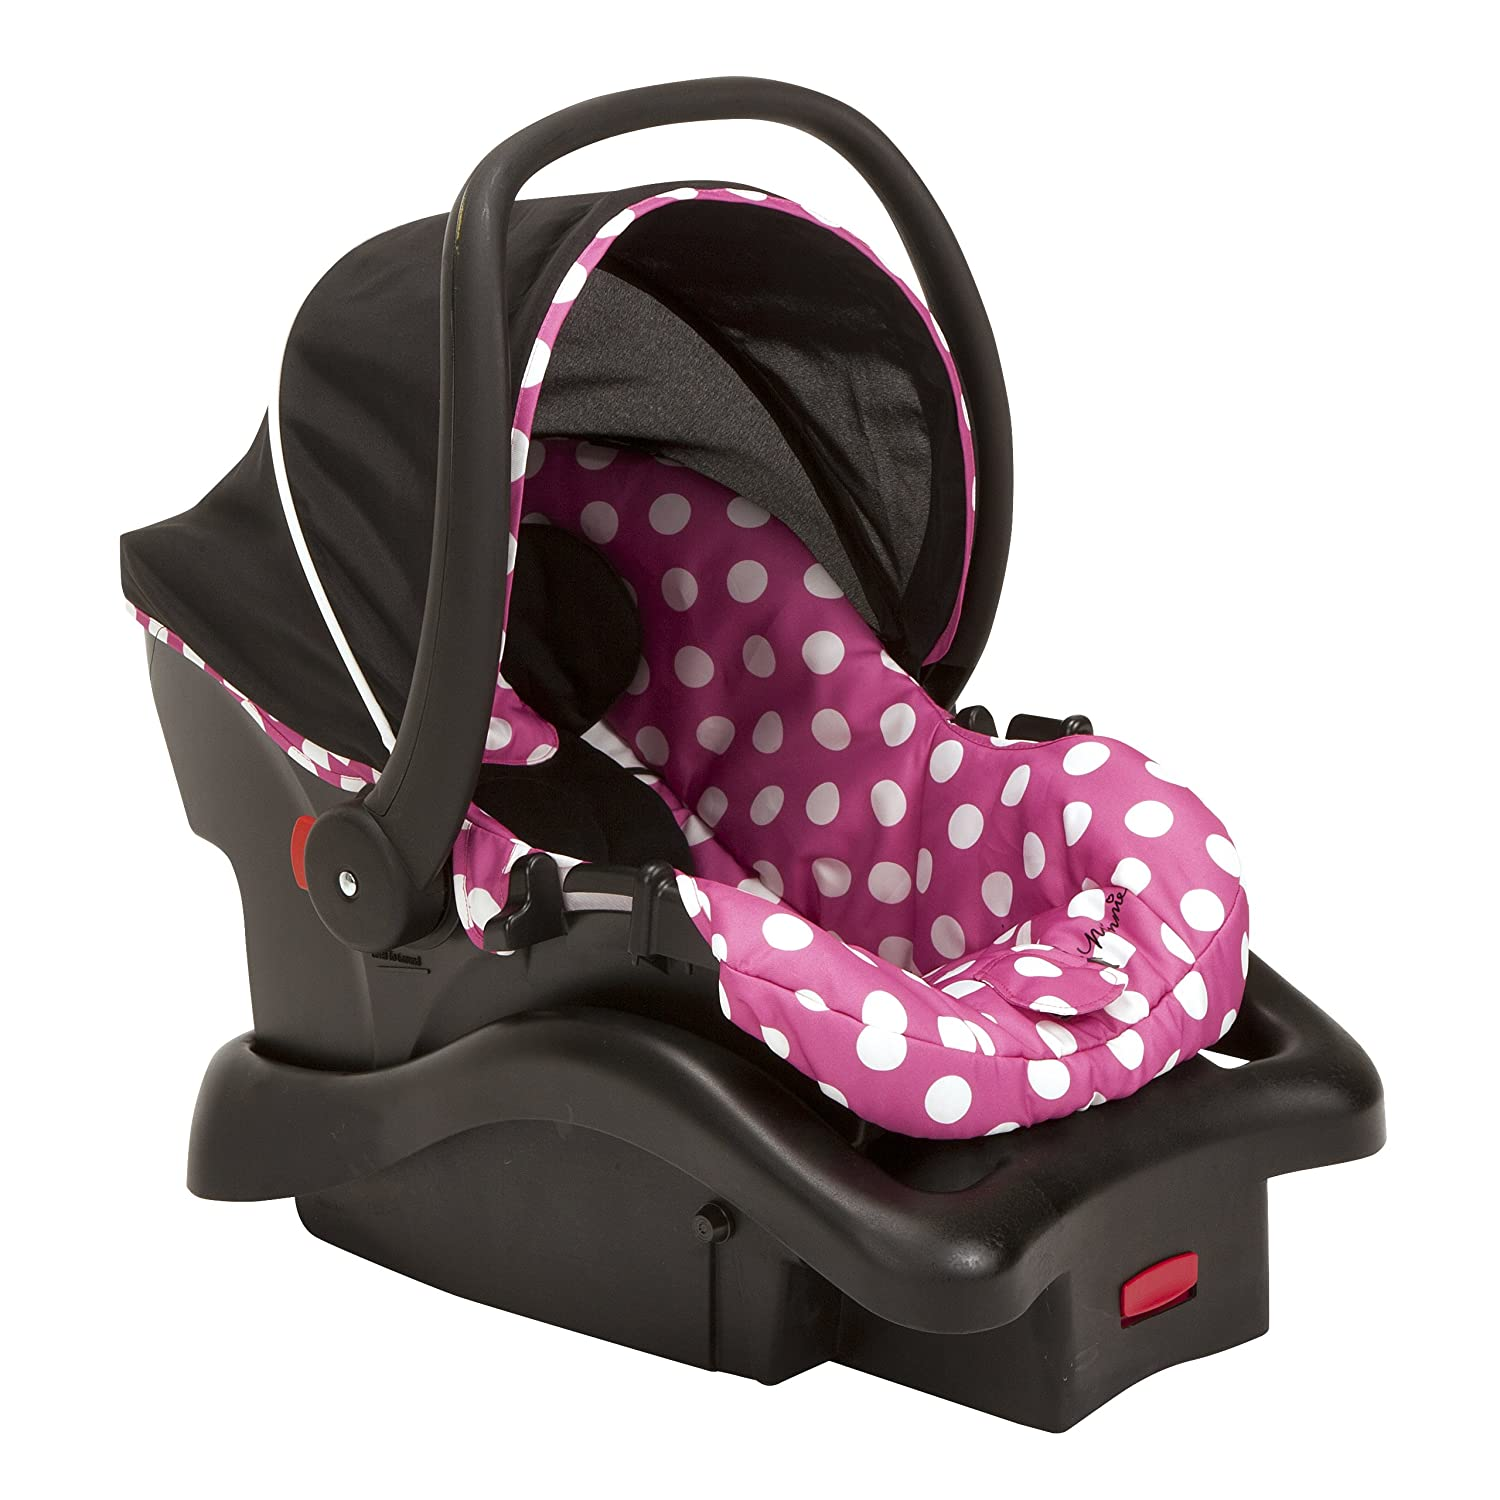 Disney Light 'n Comfy 22 Luxe Baby Car Seat